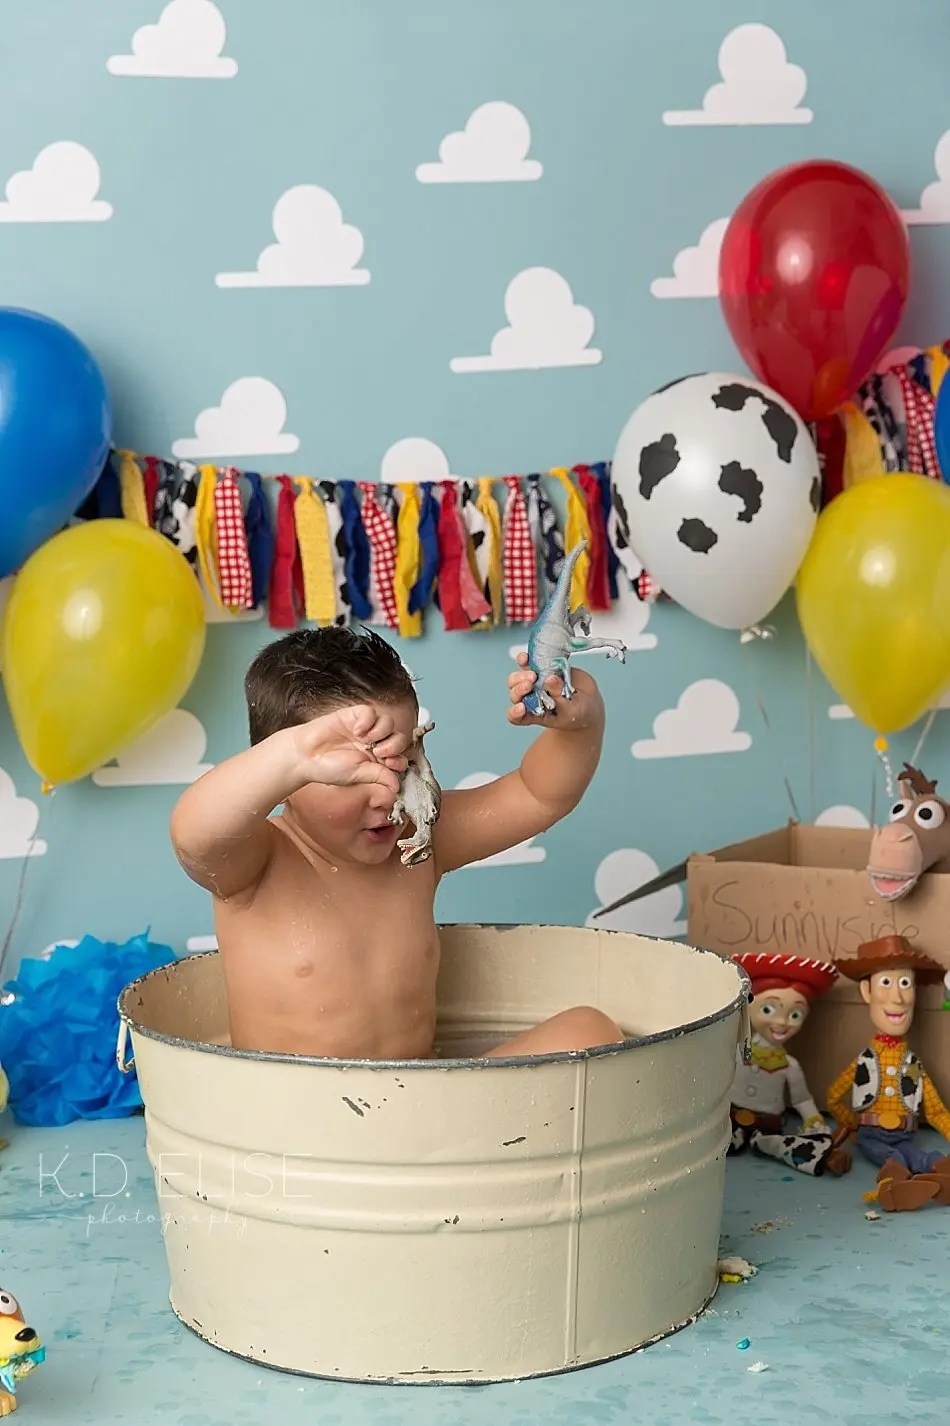 Three year old little boy in a metal wash basin splashing after his Toy Story themed cake smash.